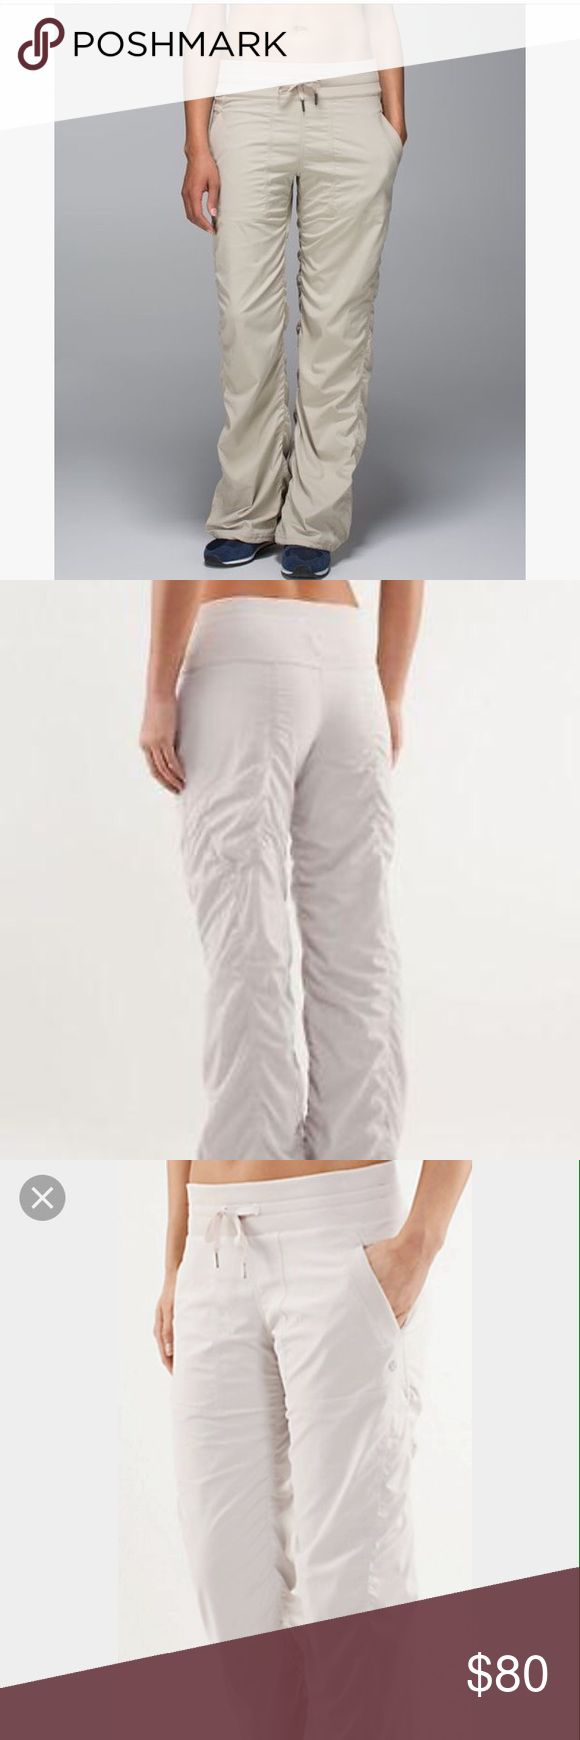 Lululemon Athletica cream dance ruched pants Lululemon Athletica cream dance ruched pants-these have no size tag but fit a small/medium best-sizes 4-8 for a better fit. Measurements upon request. lululemon athletica Pants Track Pants & Joggers